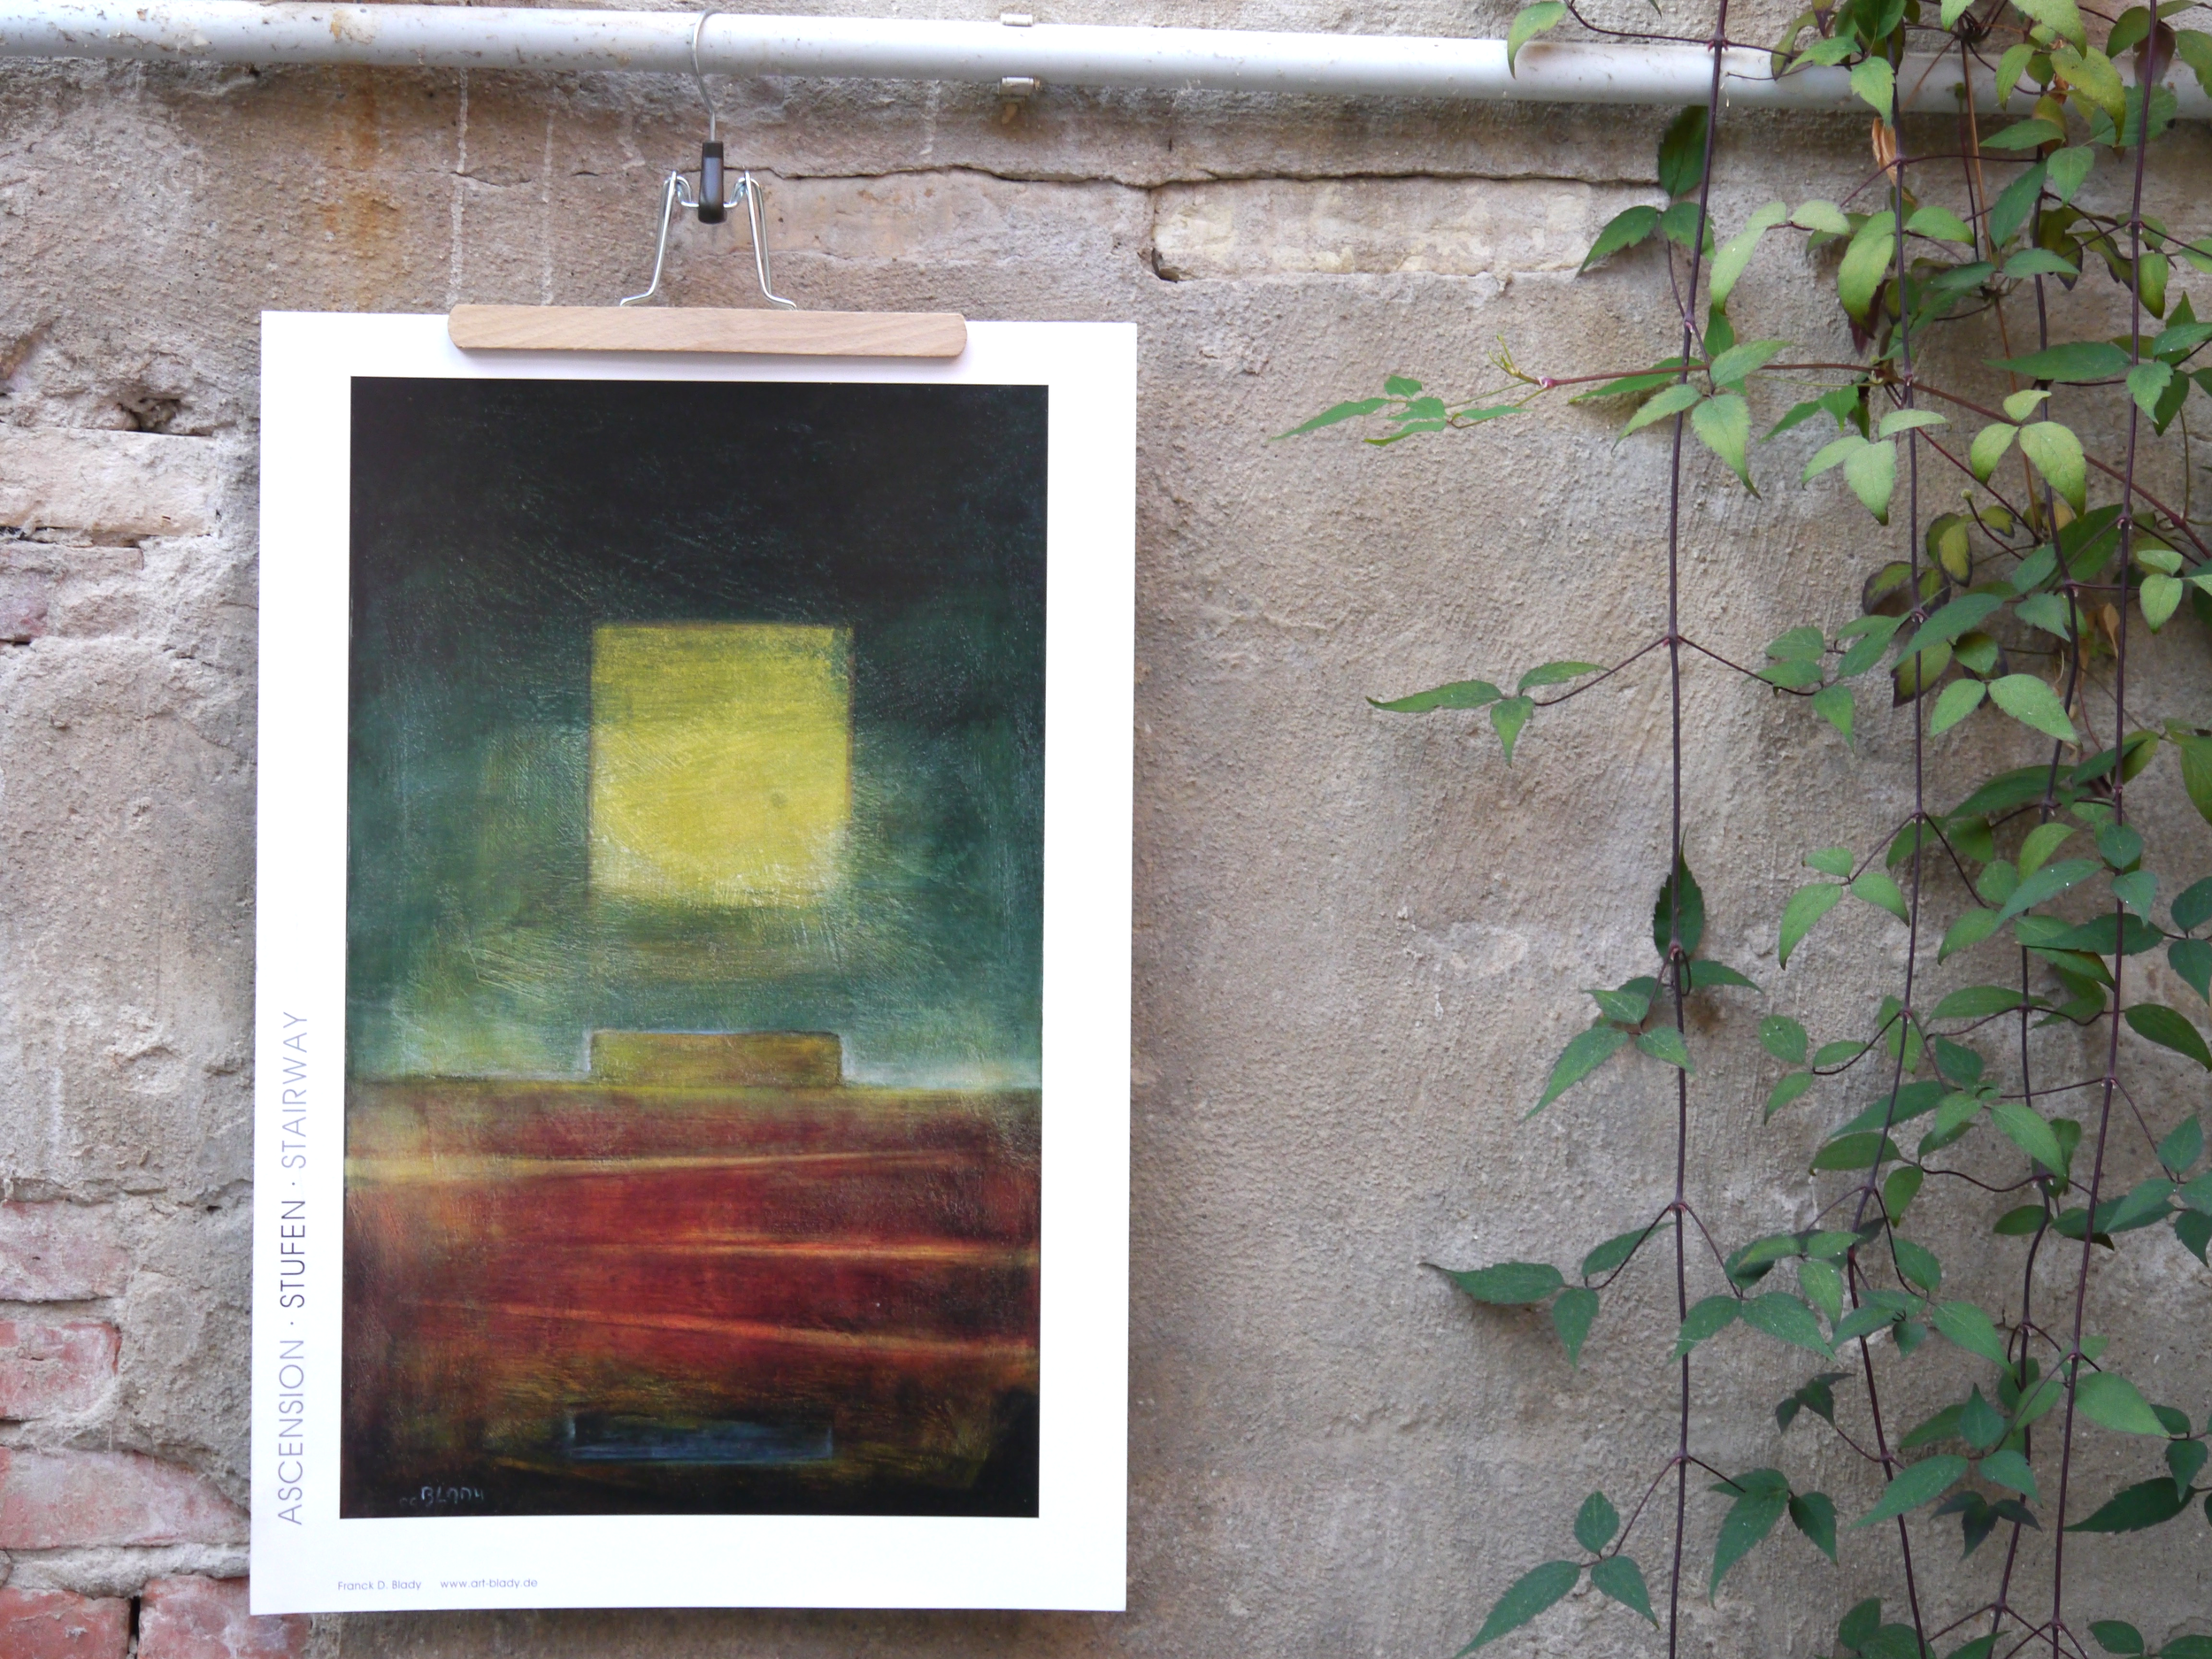 Stufen -                                                   Plakat, 62 x 42 cm, 29 Euro.                                                  Shop now